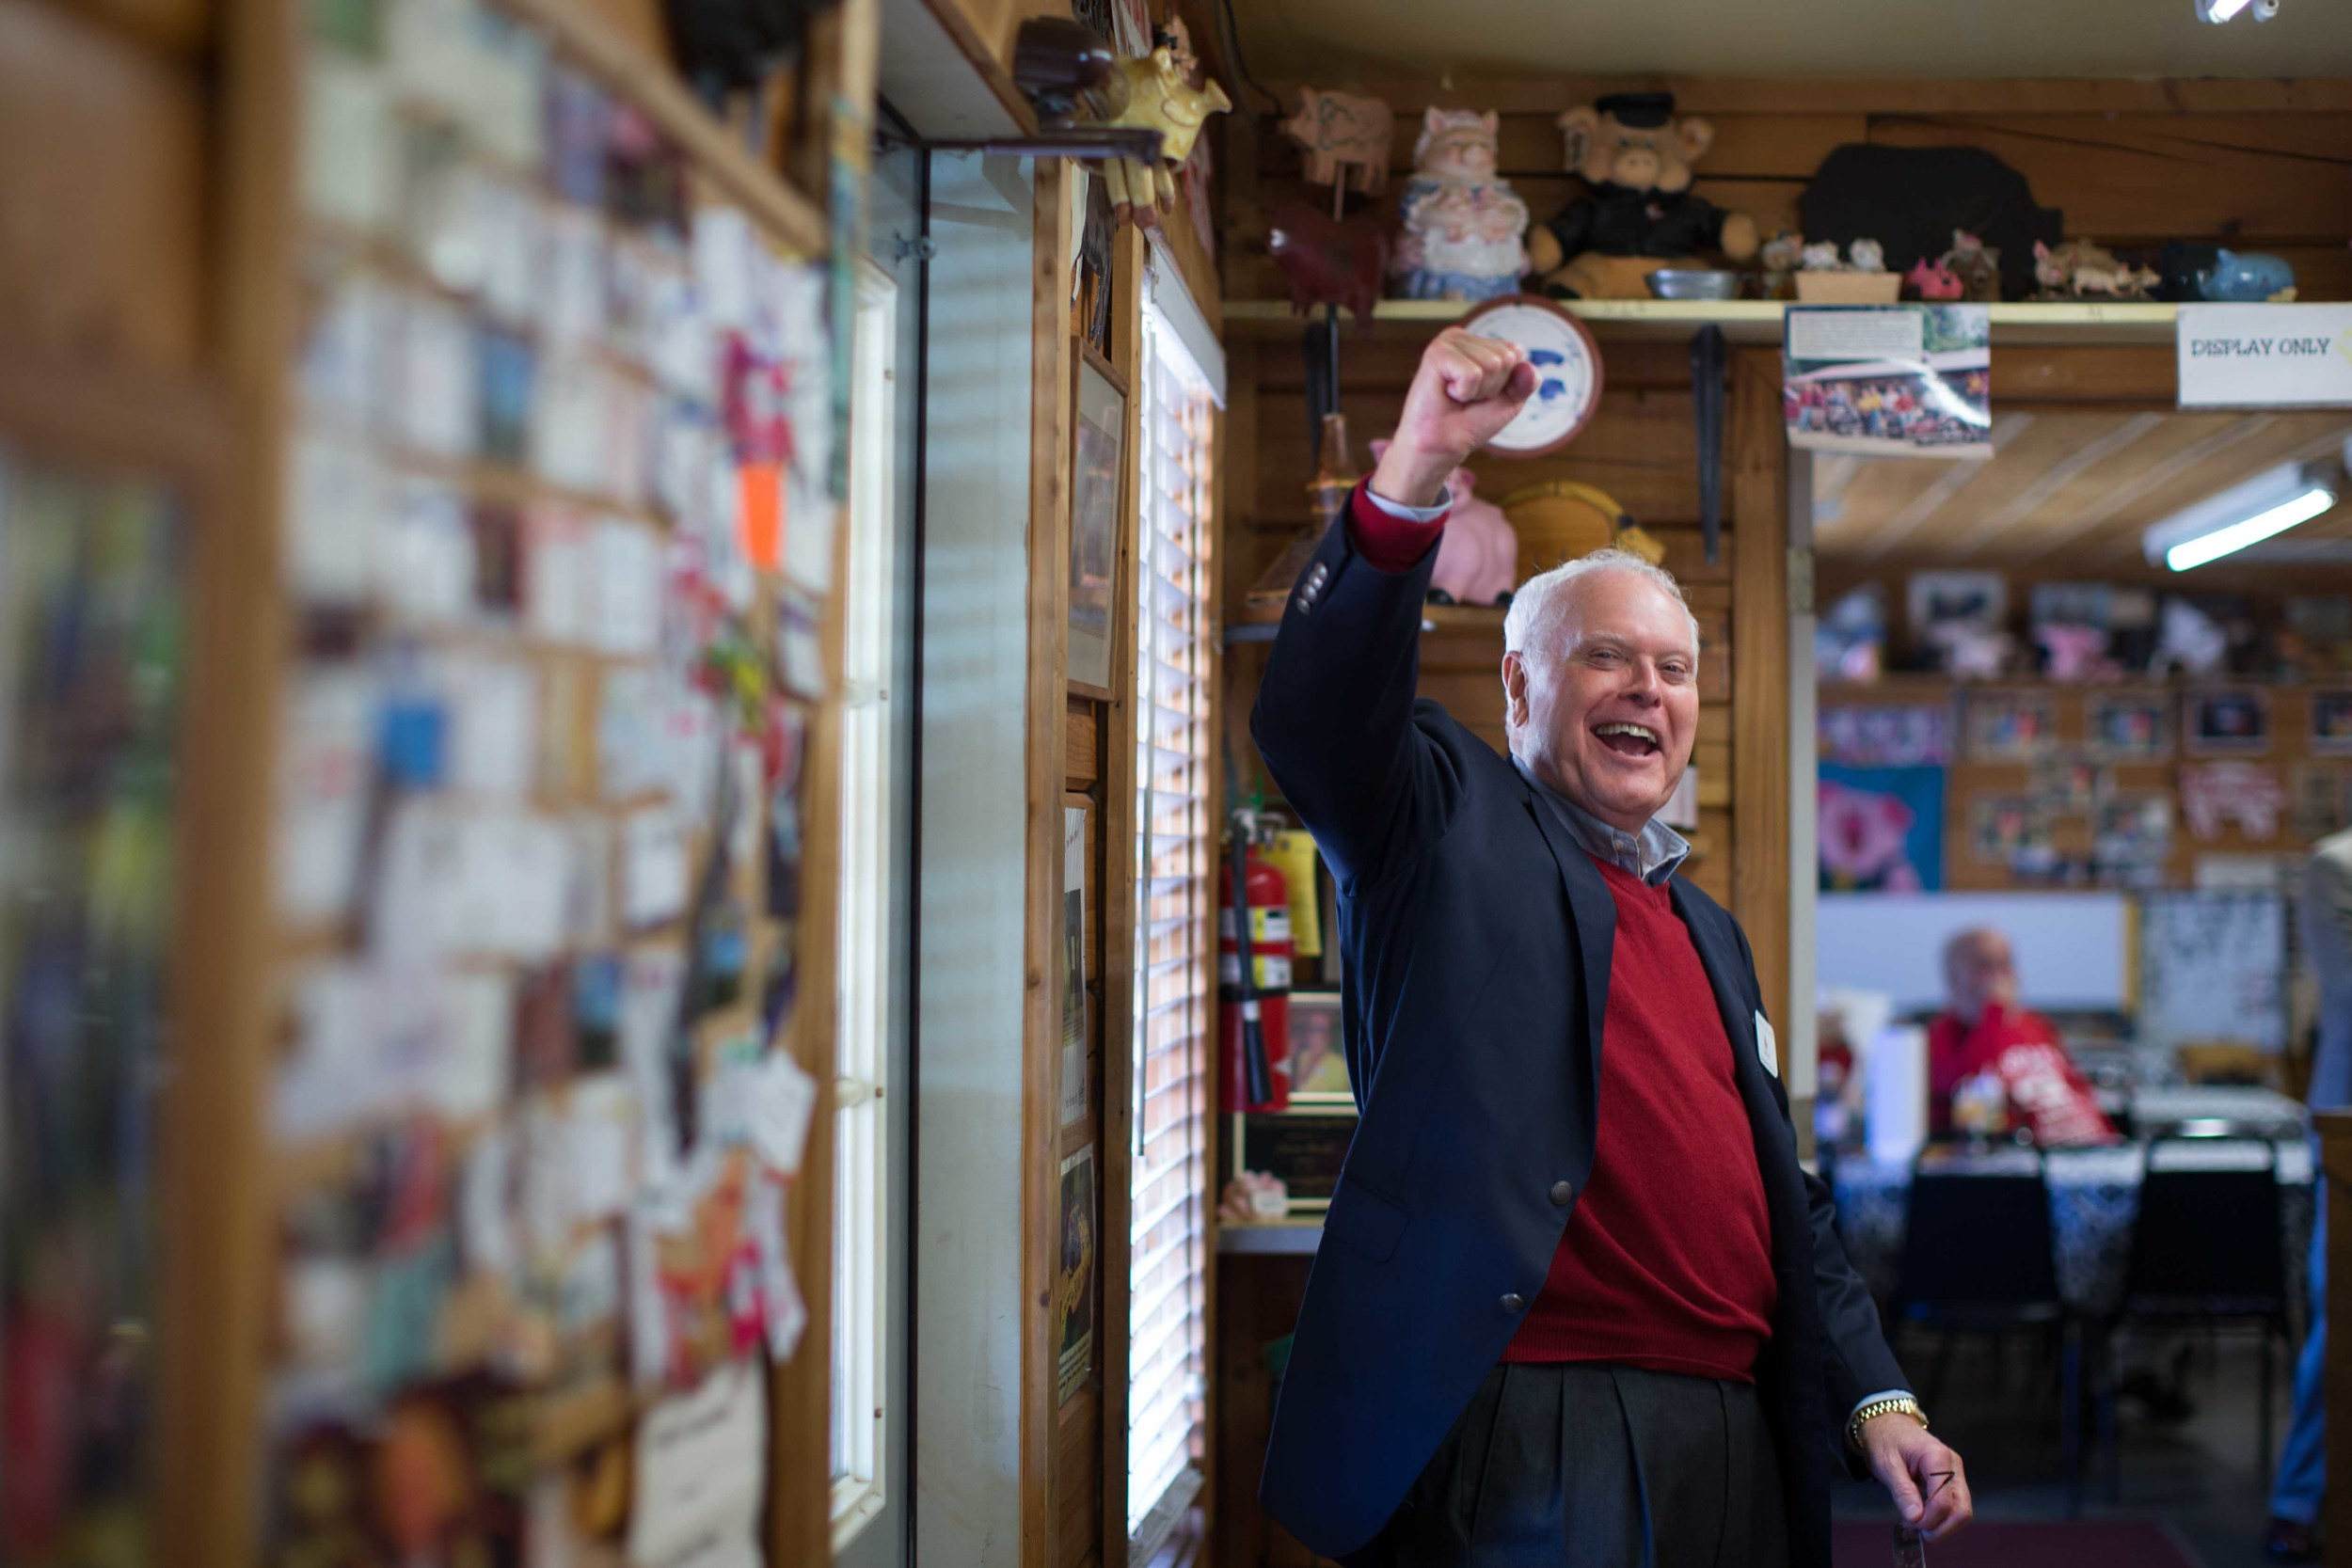 """Joe McCutchen, supporter of Republican presidential candidate Ted Cruz, shouts """"Cruz for President"""" after eating lunch at Poole's BBQ, Saturday, Dec. 5, 2015, in Ellijay, Ga. McCutchen and other supporters hope to host a visit from Ted Cruz at Poole's BBQ in early 2016. BRANDEN CAMP FOR THE BOSTON GLOBE"""